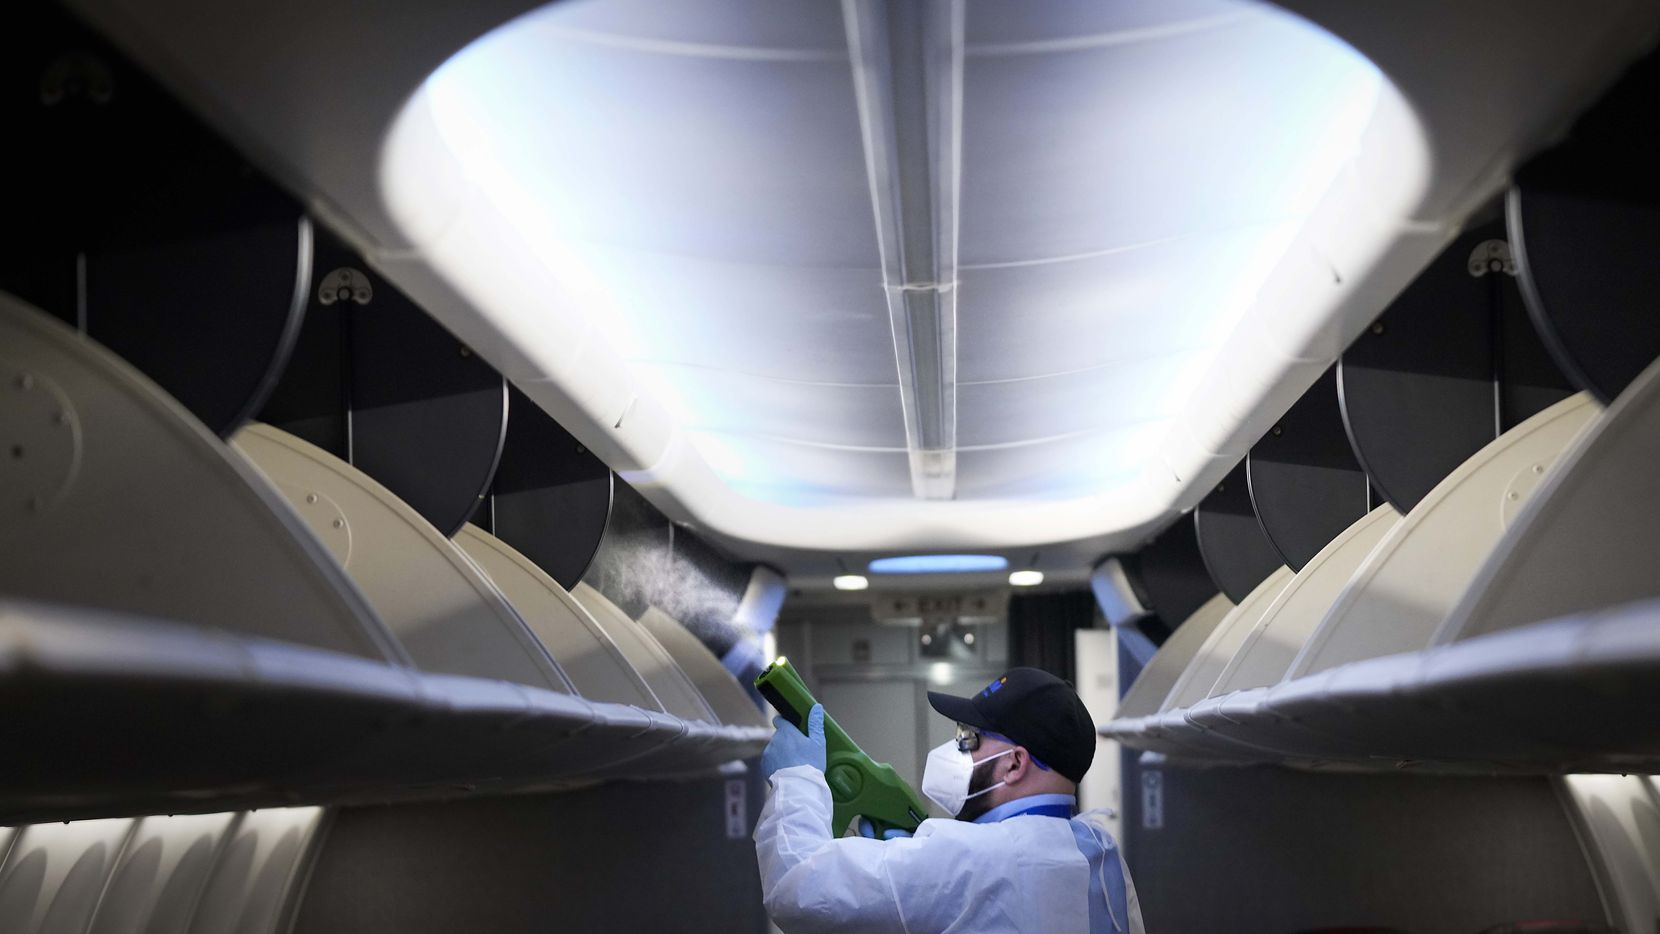 Jamie Shatinsky of ABM Aviation uses a handheld electrostatic disinfectant sprayer while disinfecting an American Airlines aircraft at Dallas Fort Worth (DFW) International Airport Terminal A on Tuesday, June 30, 2020, in Dallas. (Smiley N. Pool/The Dallas Morning News)